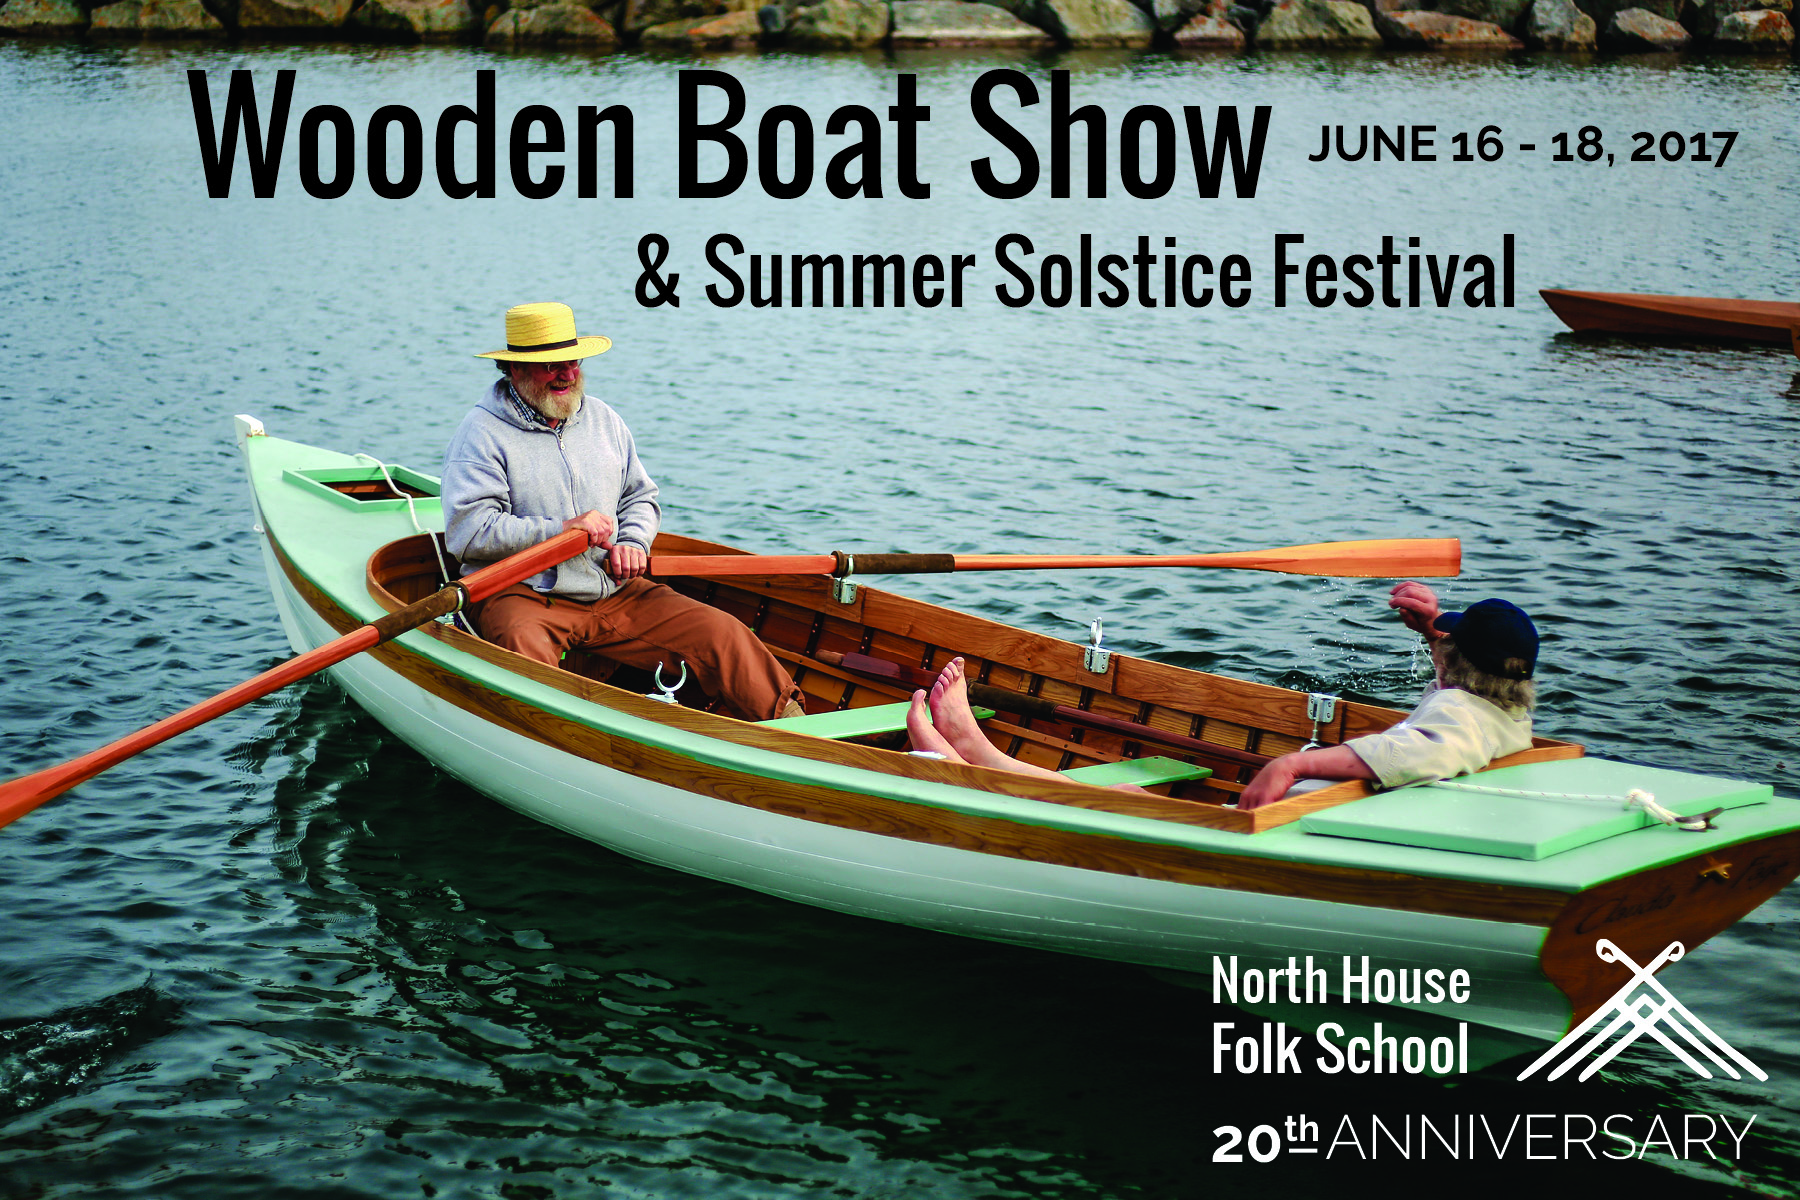 Woodenboatshow 17 postcard no 20bleeds2